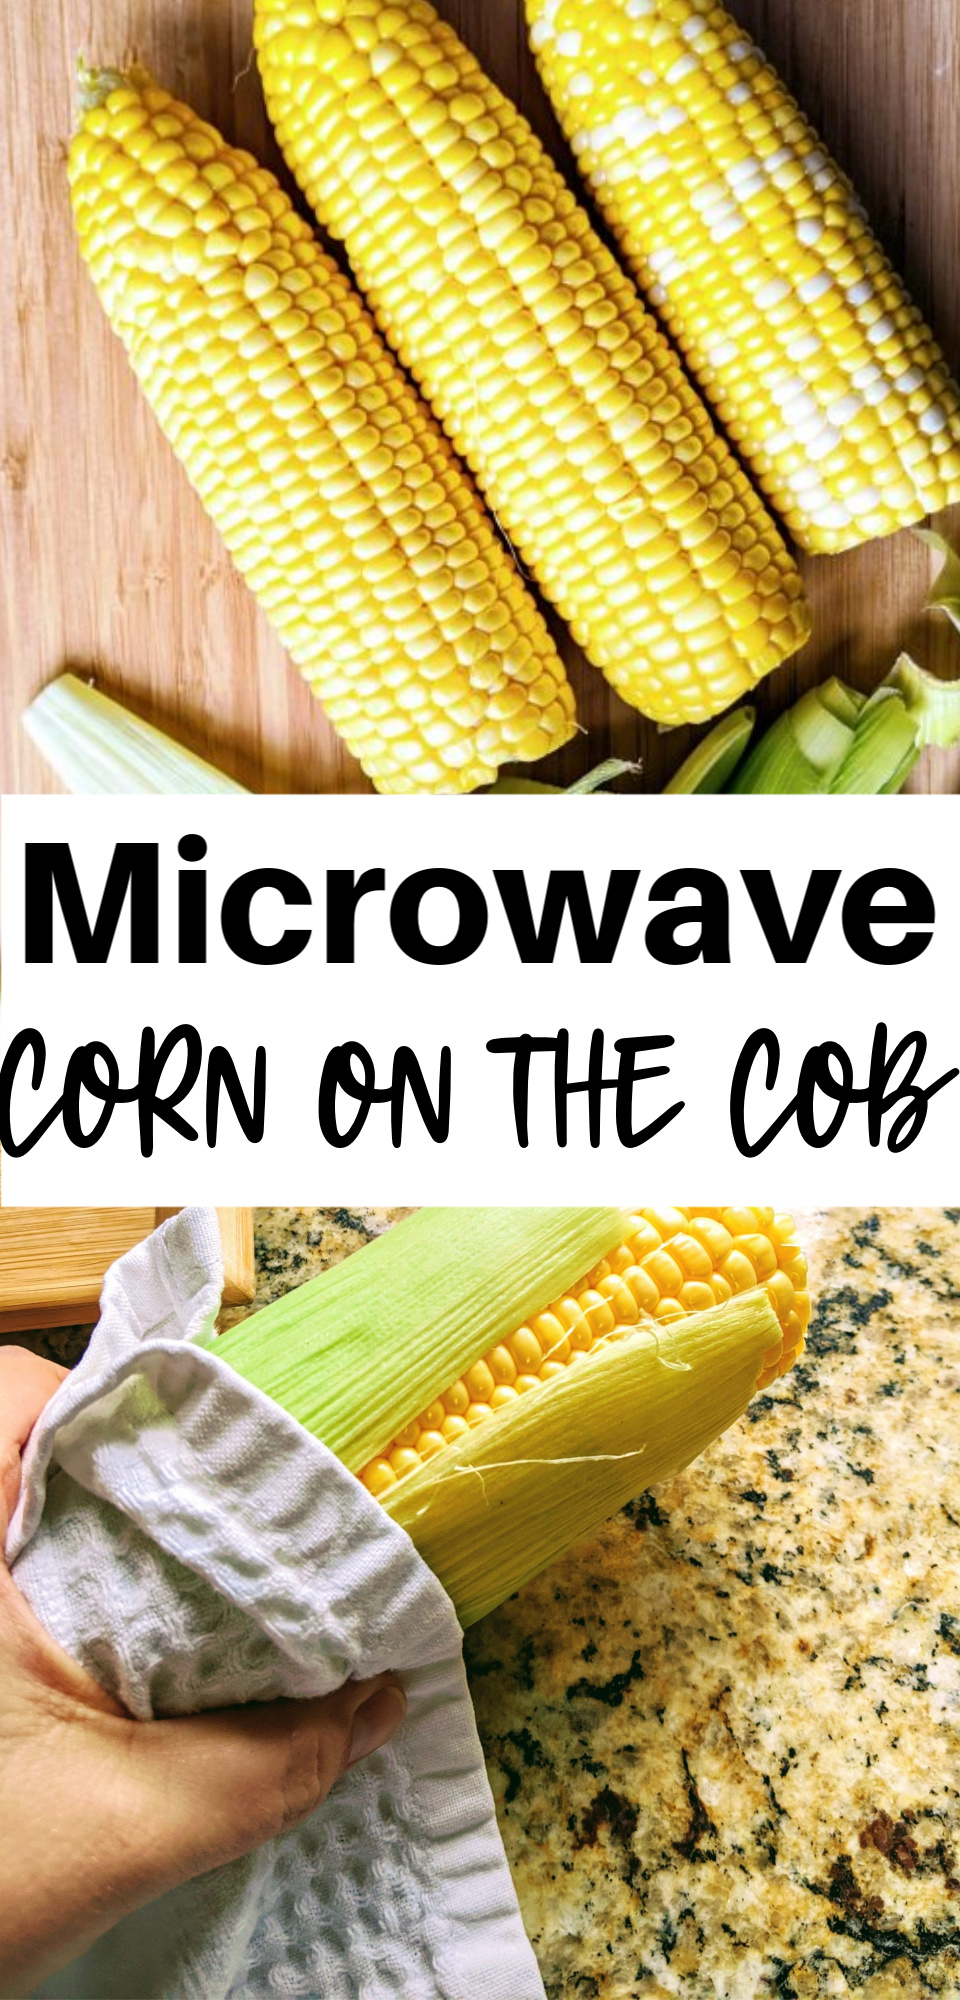 Corn on the cob in the microwave is the easiest way to cook this delicious side dish. You can cook it with or without shucking it - once you've mastered this delicious idea, you may never make it another way again! via @simplysidedishes89